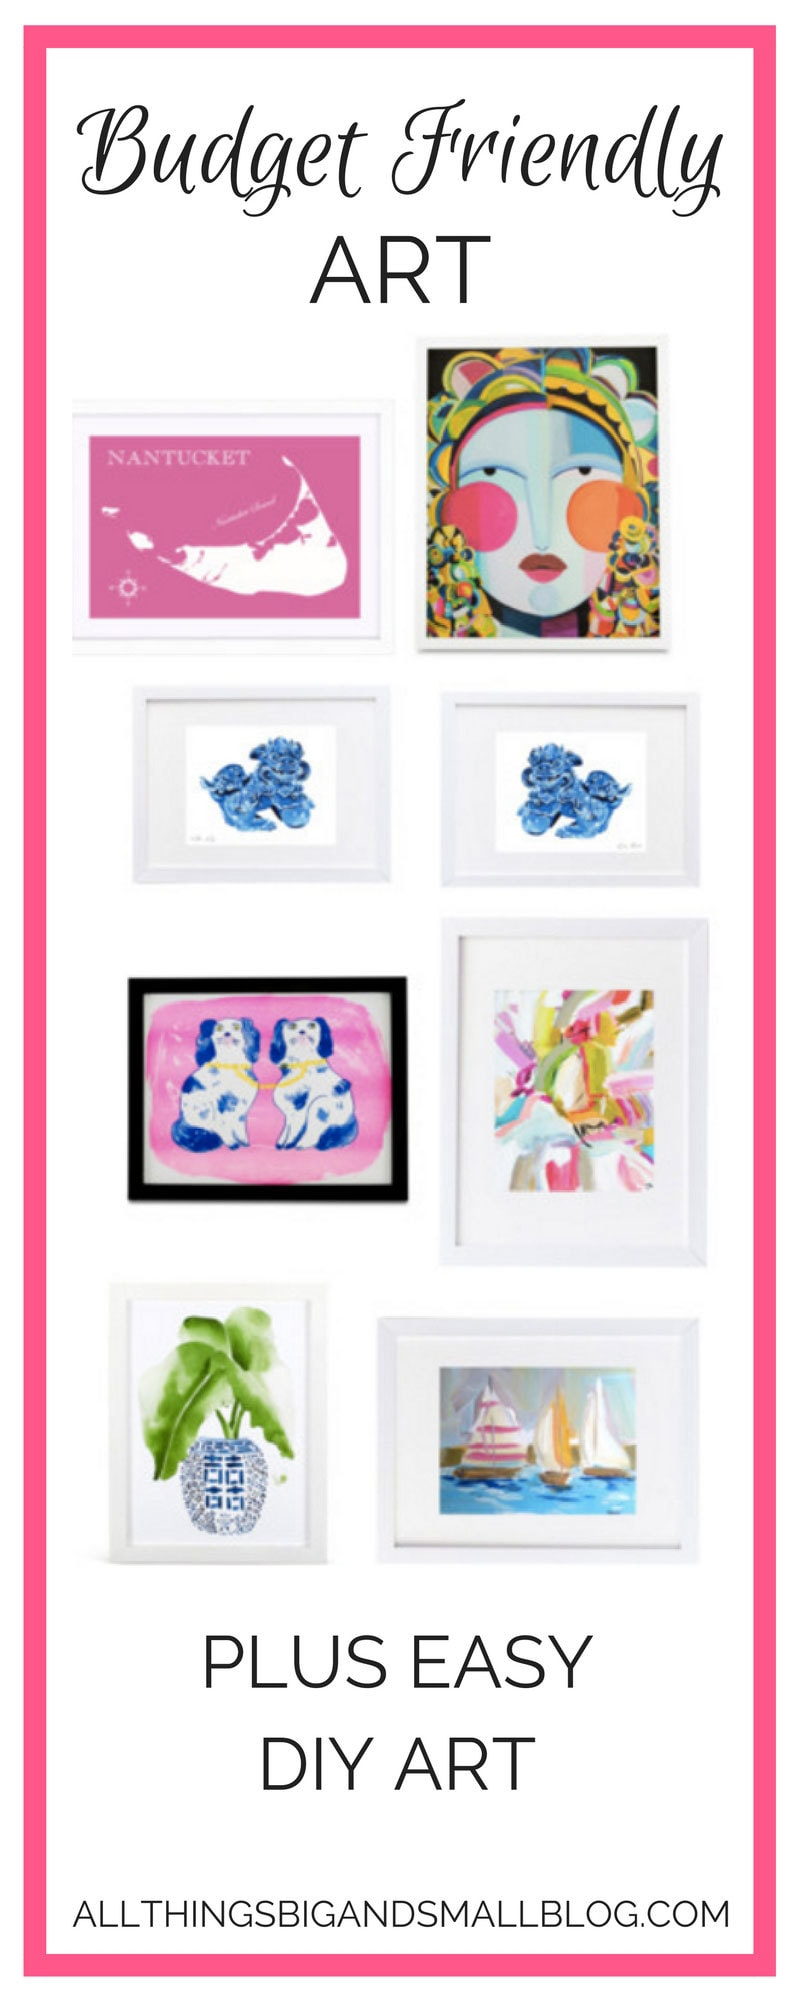 budget friendly art | affordable artwork for your home that looks amazing | All Things Big and Small - Budget Art by popular home decor blogger DIY Decor Mom